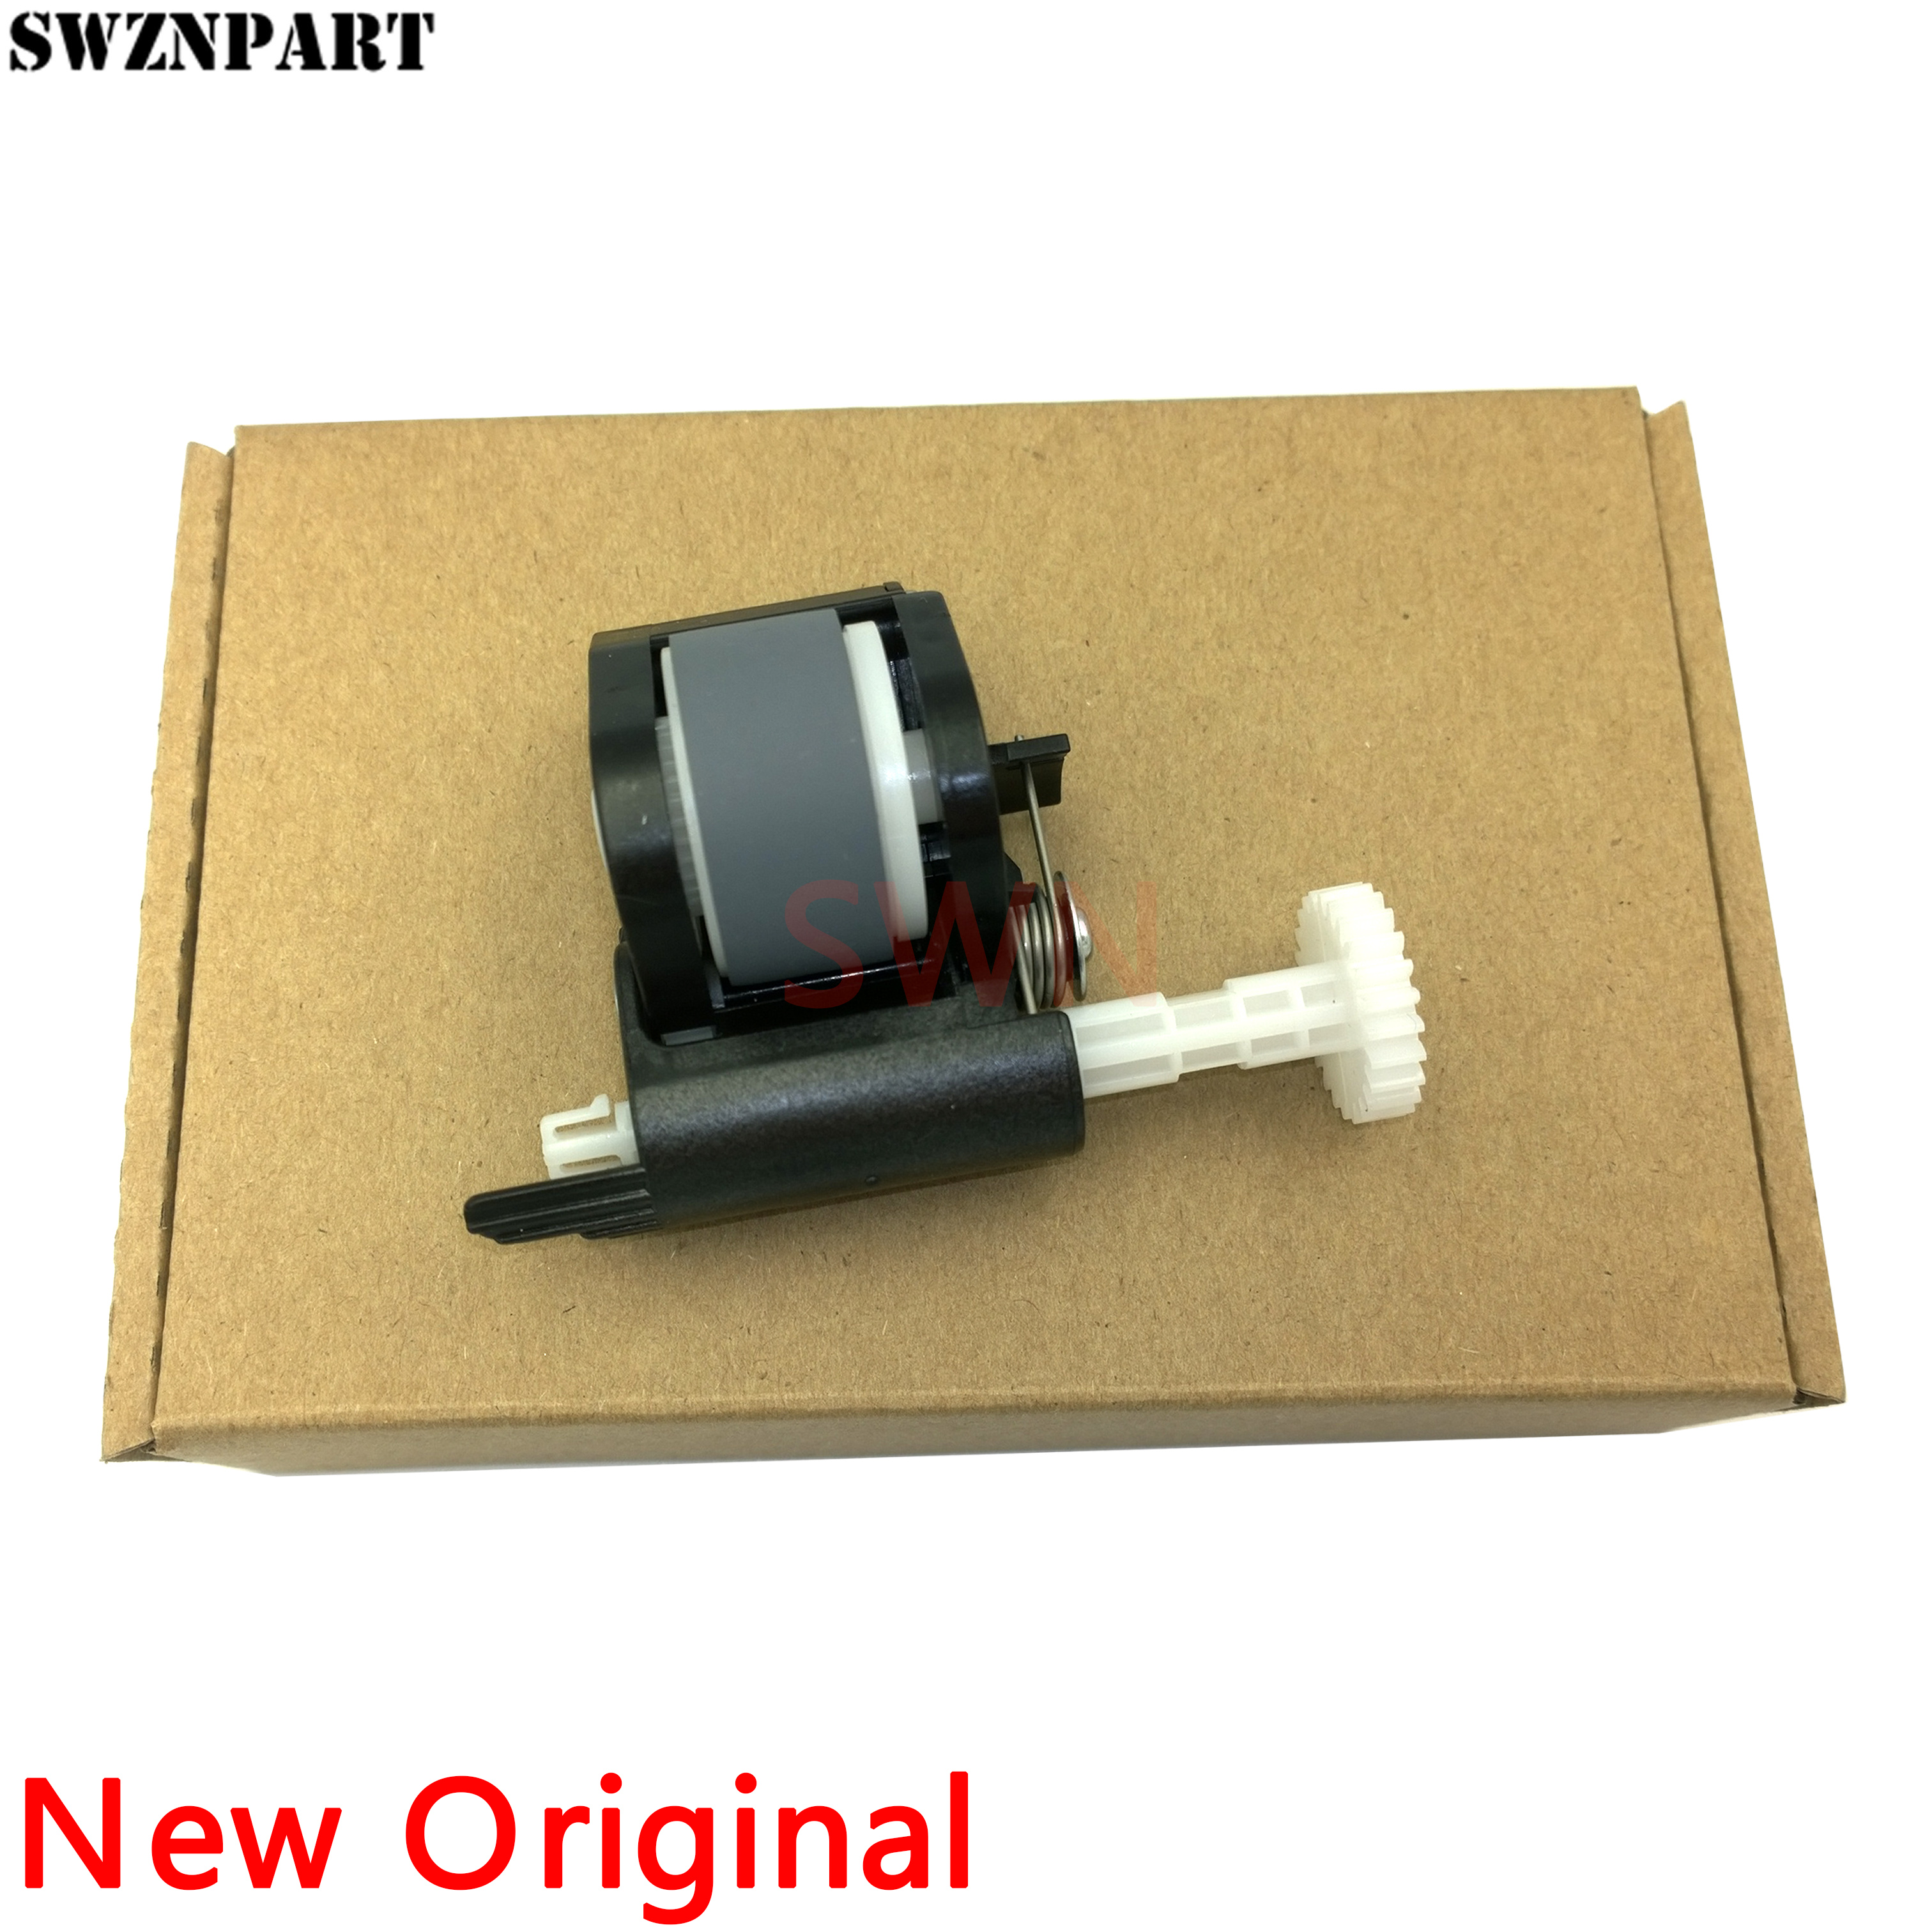 Original New Pickup Roller For Epson L100 L200 L101 L201 T22 TX120 TX130 SX125 S22 SX130 ME330 ME350 ME35 Paper Feed Assembly